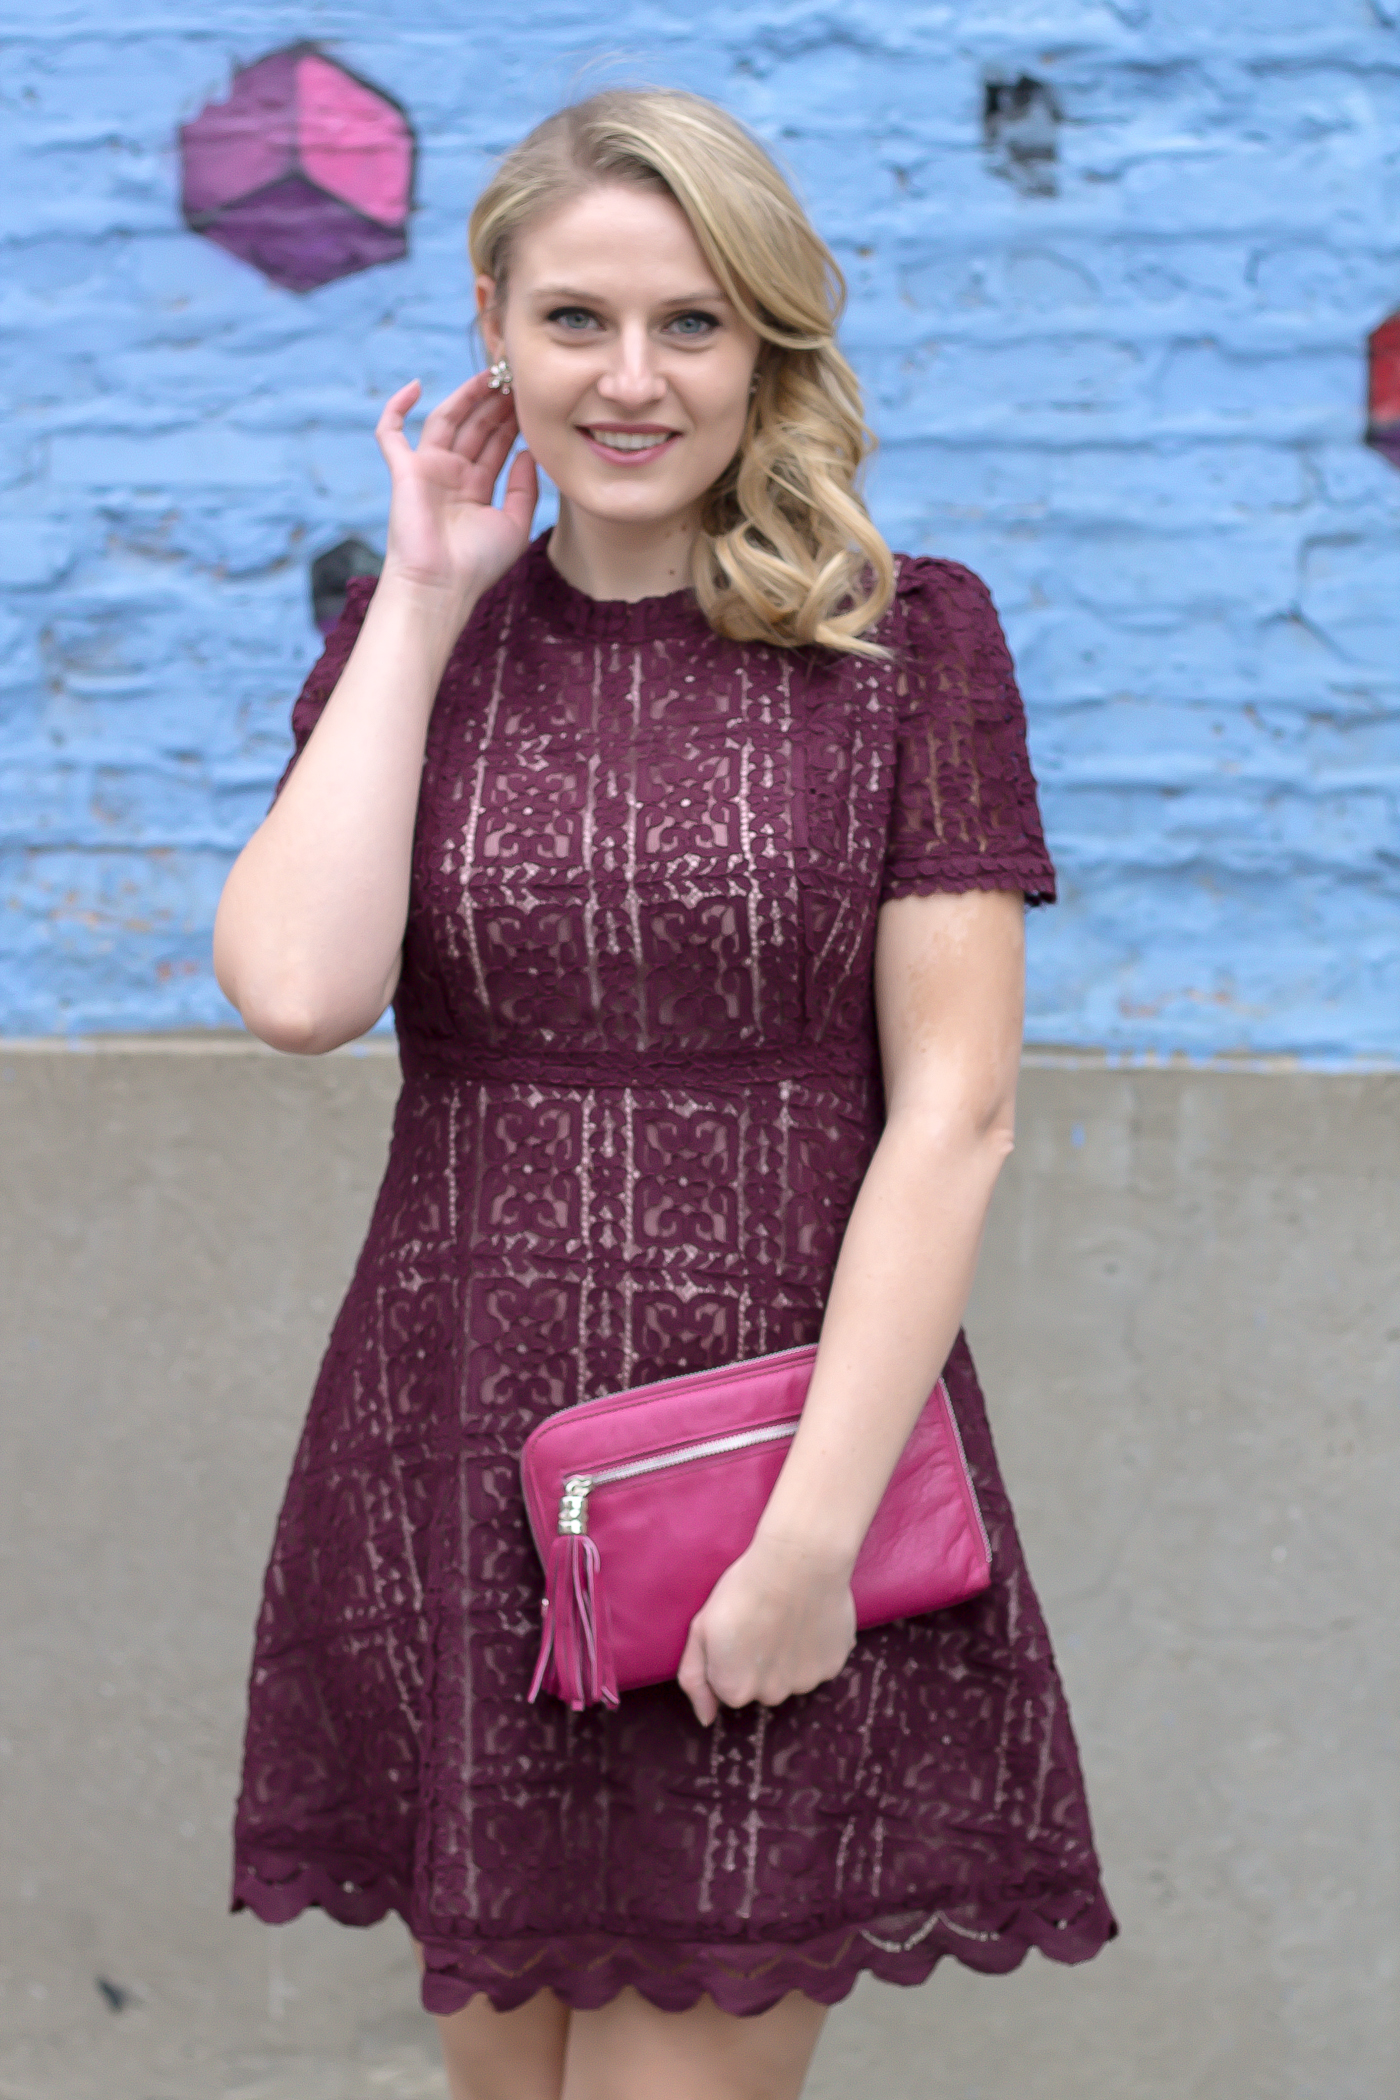 How to wear a lace dress and not look girly